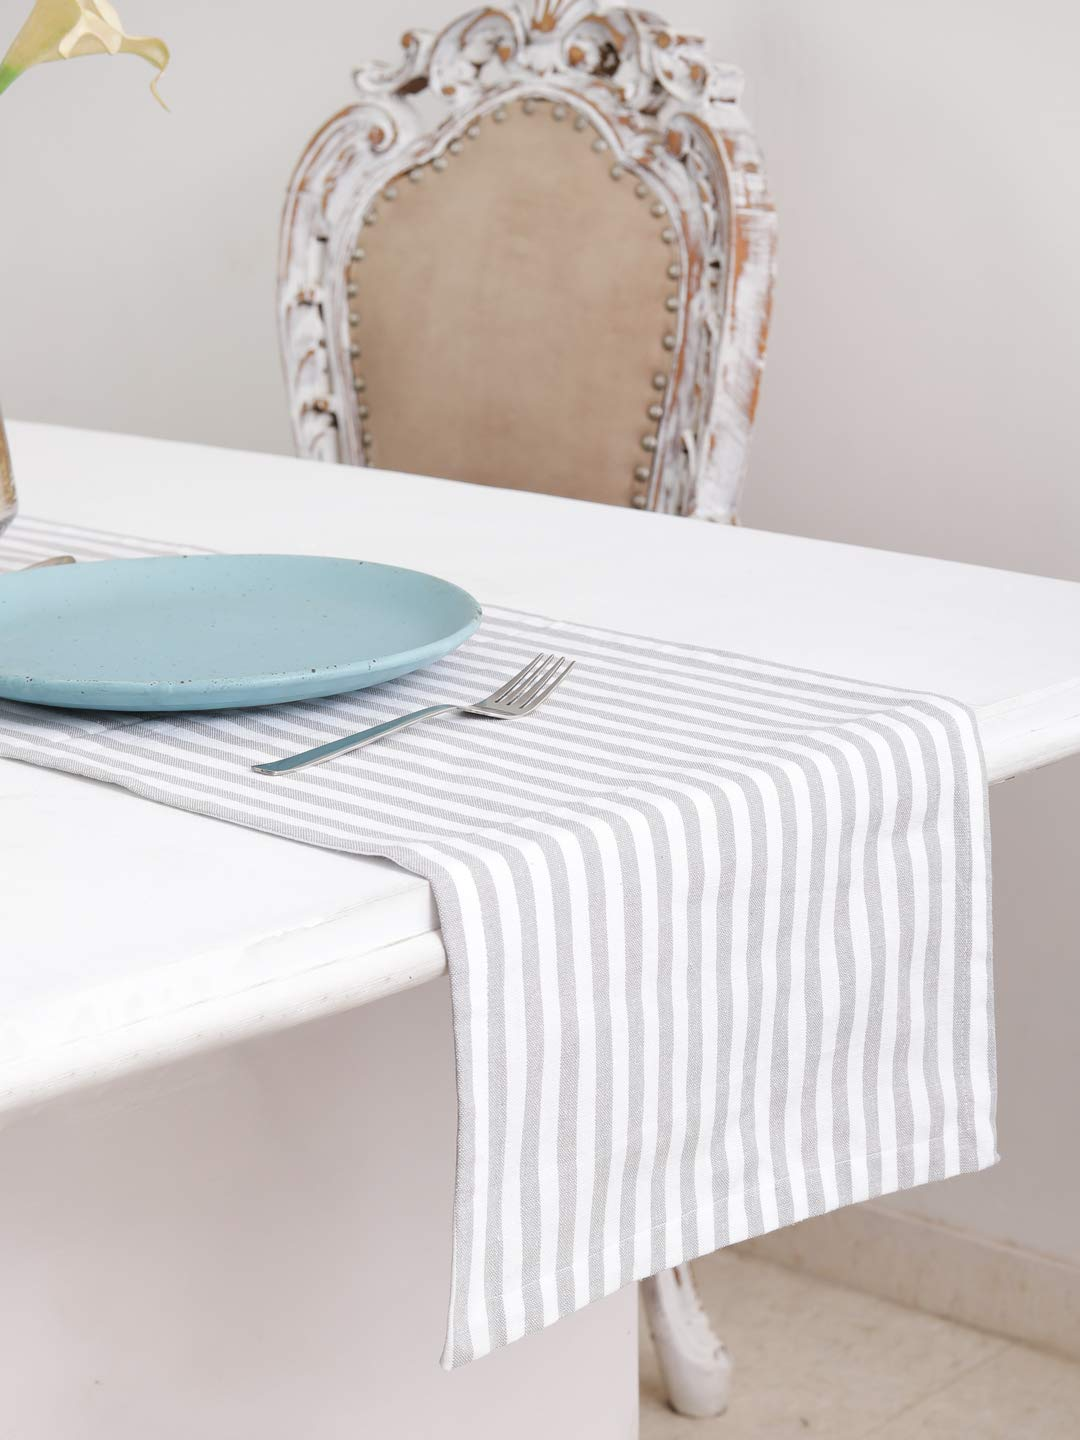 "Cotton Table Runner (13 X 72 Inches), Grey & White Stripe - 1"" Hemmed With Mitered Corner,Perfect For All Seasons And Holidays"